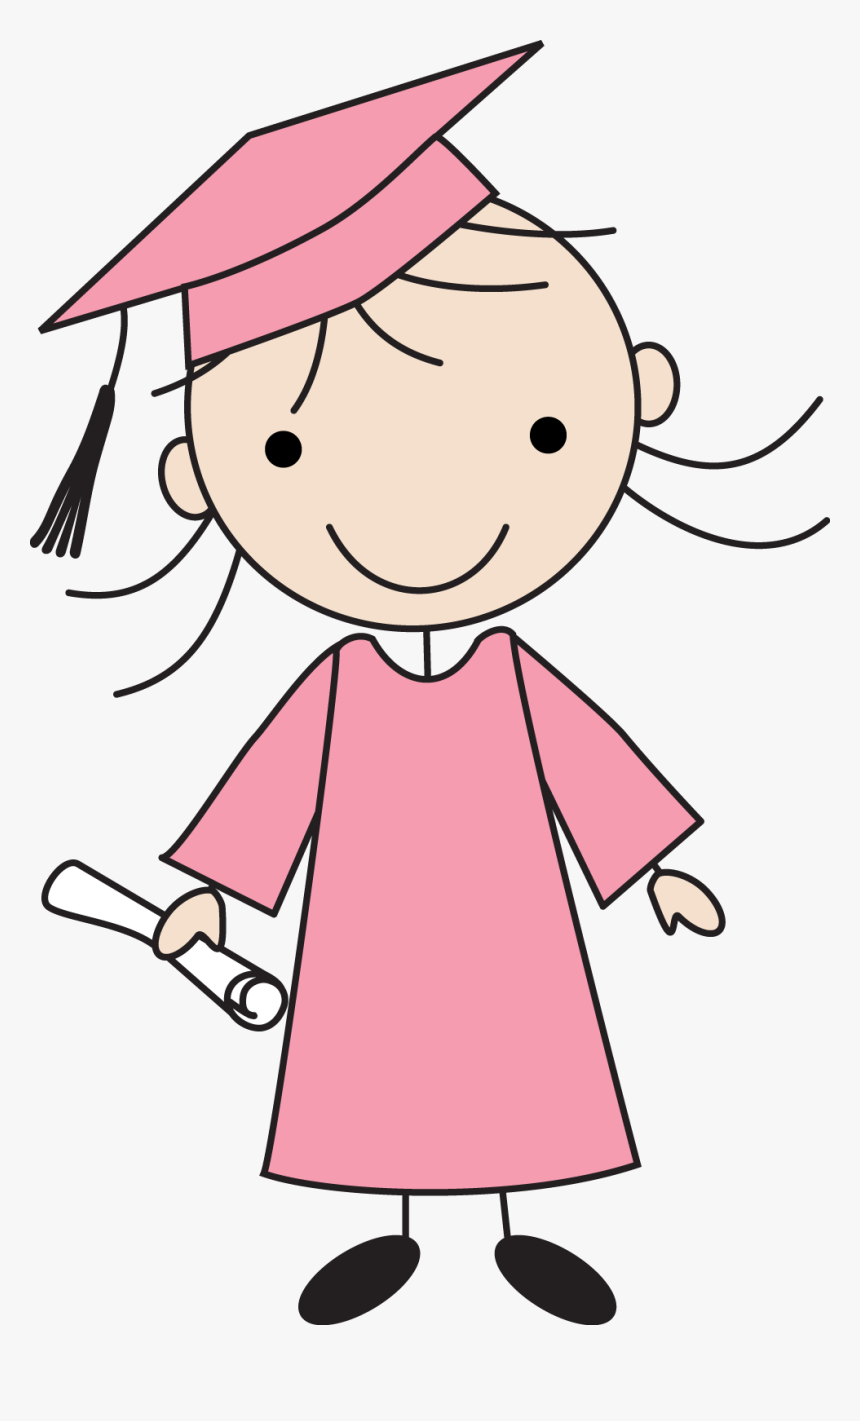 Transparent Girl Stick Figure Png - Kids Drawings Of Graduation, Png Download, Free Download